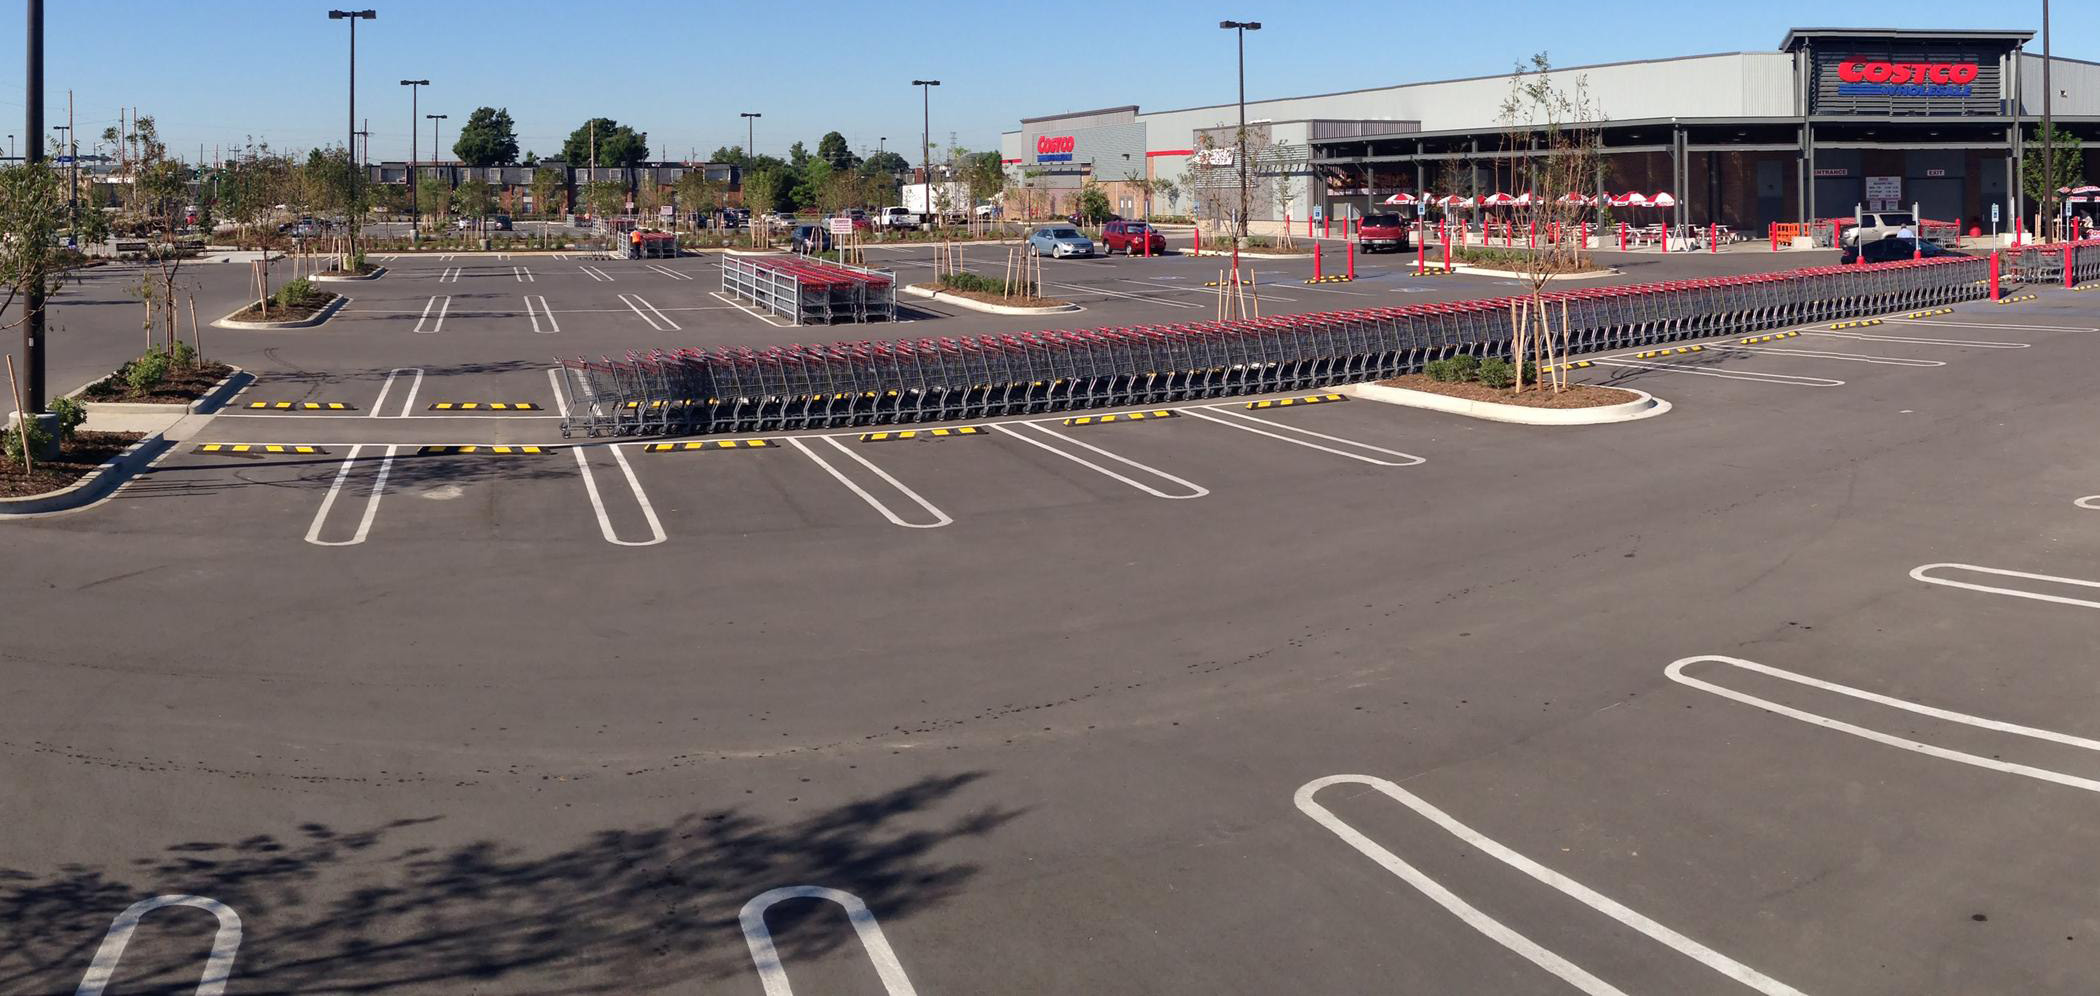 The parking lot at Costco Baton Rouge